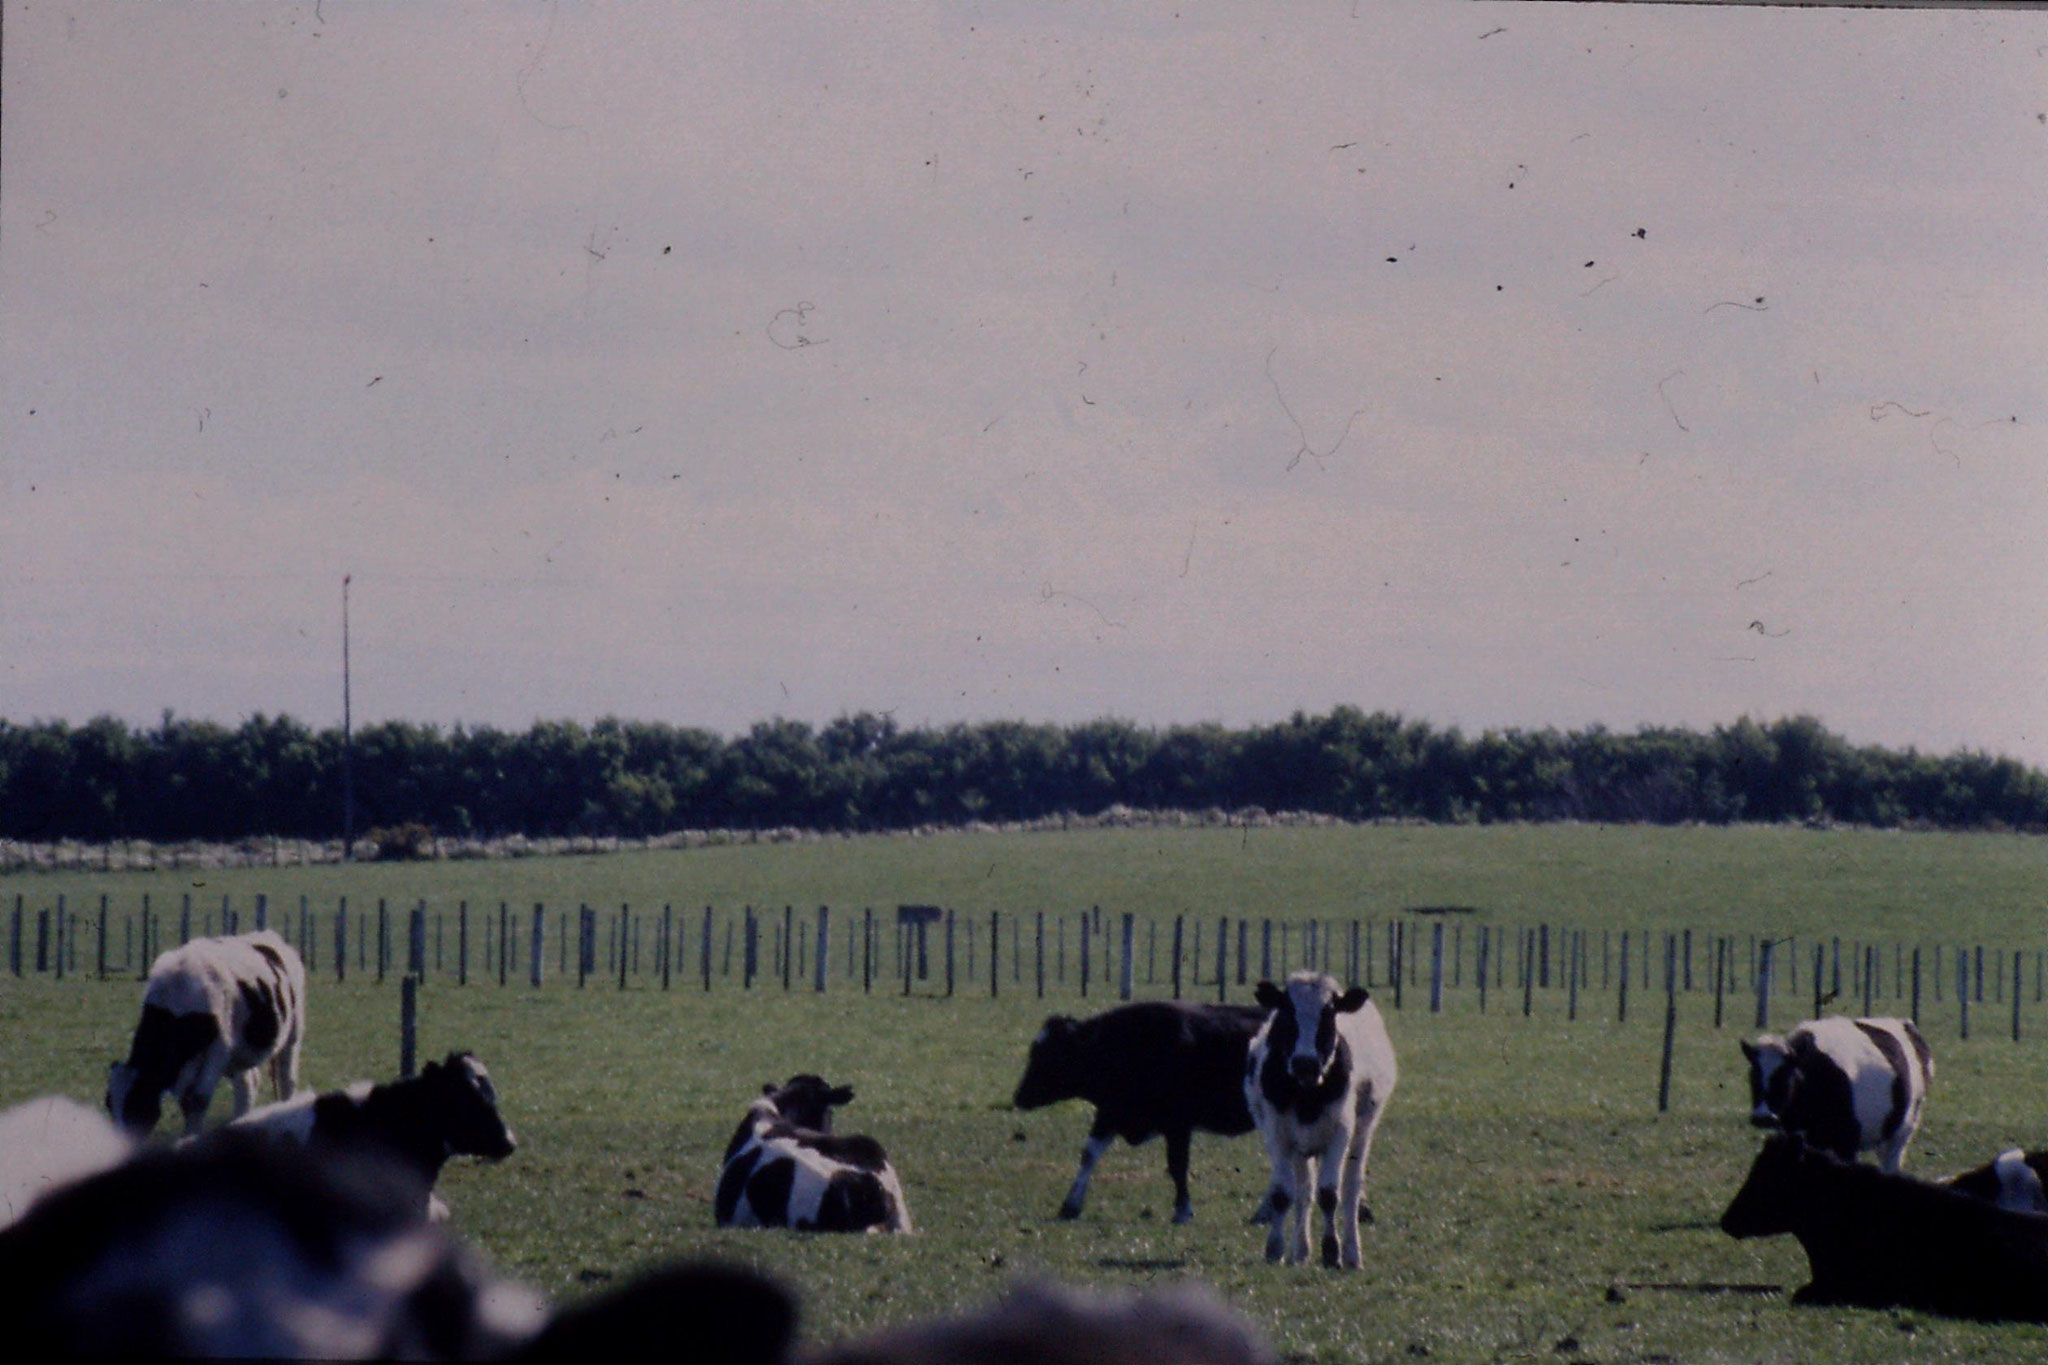 28/8/1990: 16: Mt Egmont and cows west of Waverley